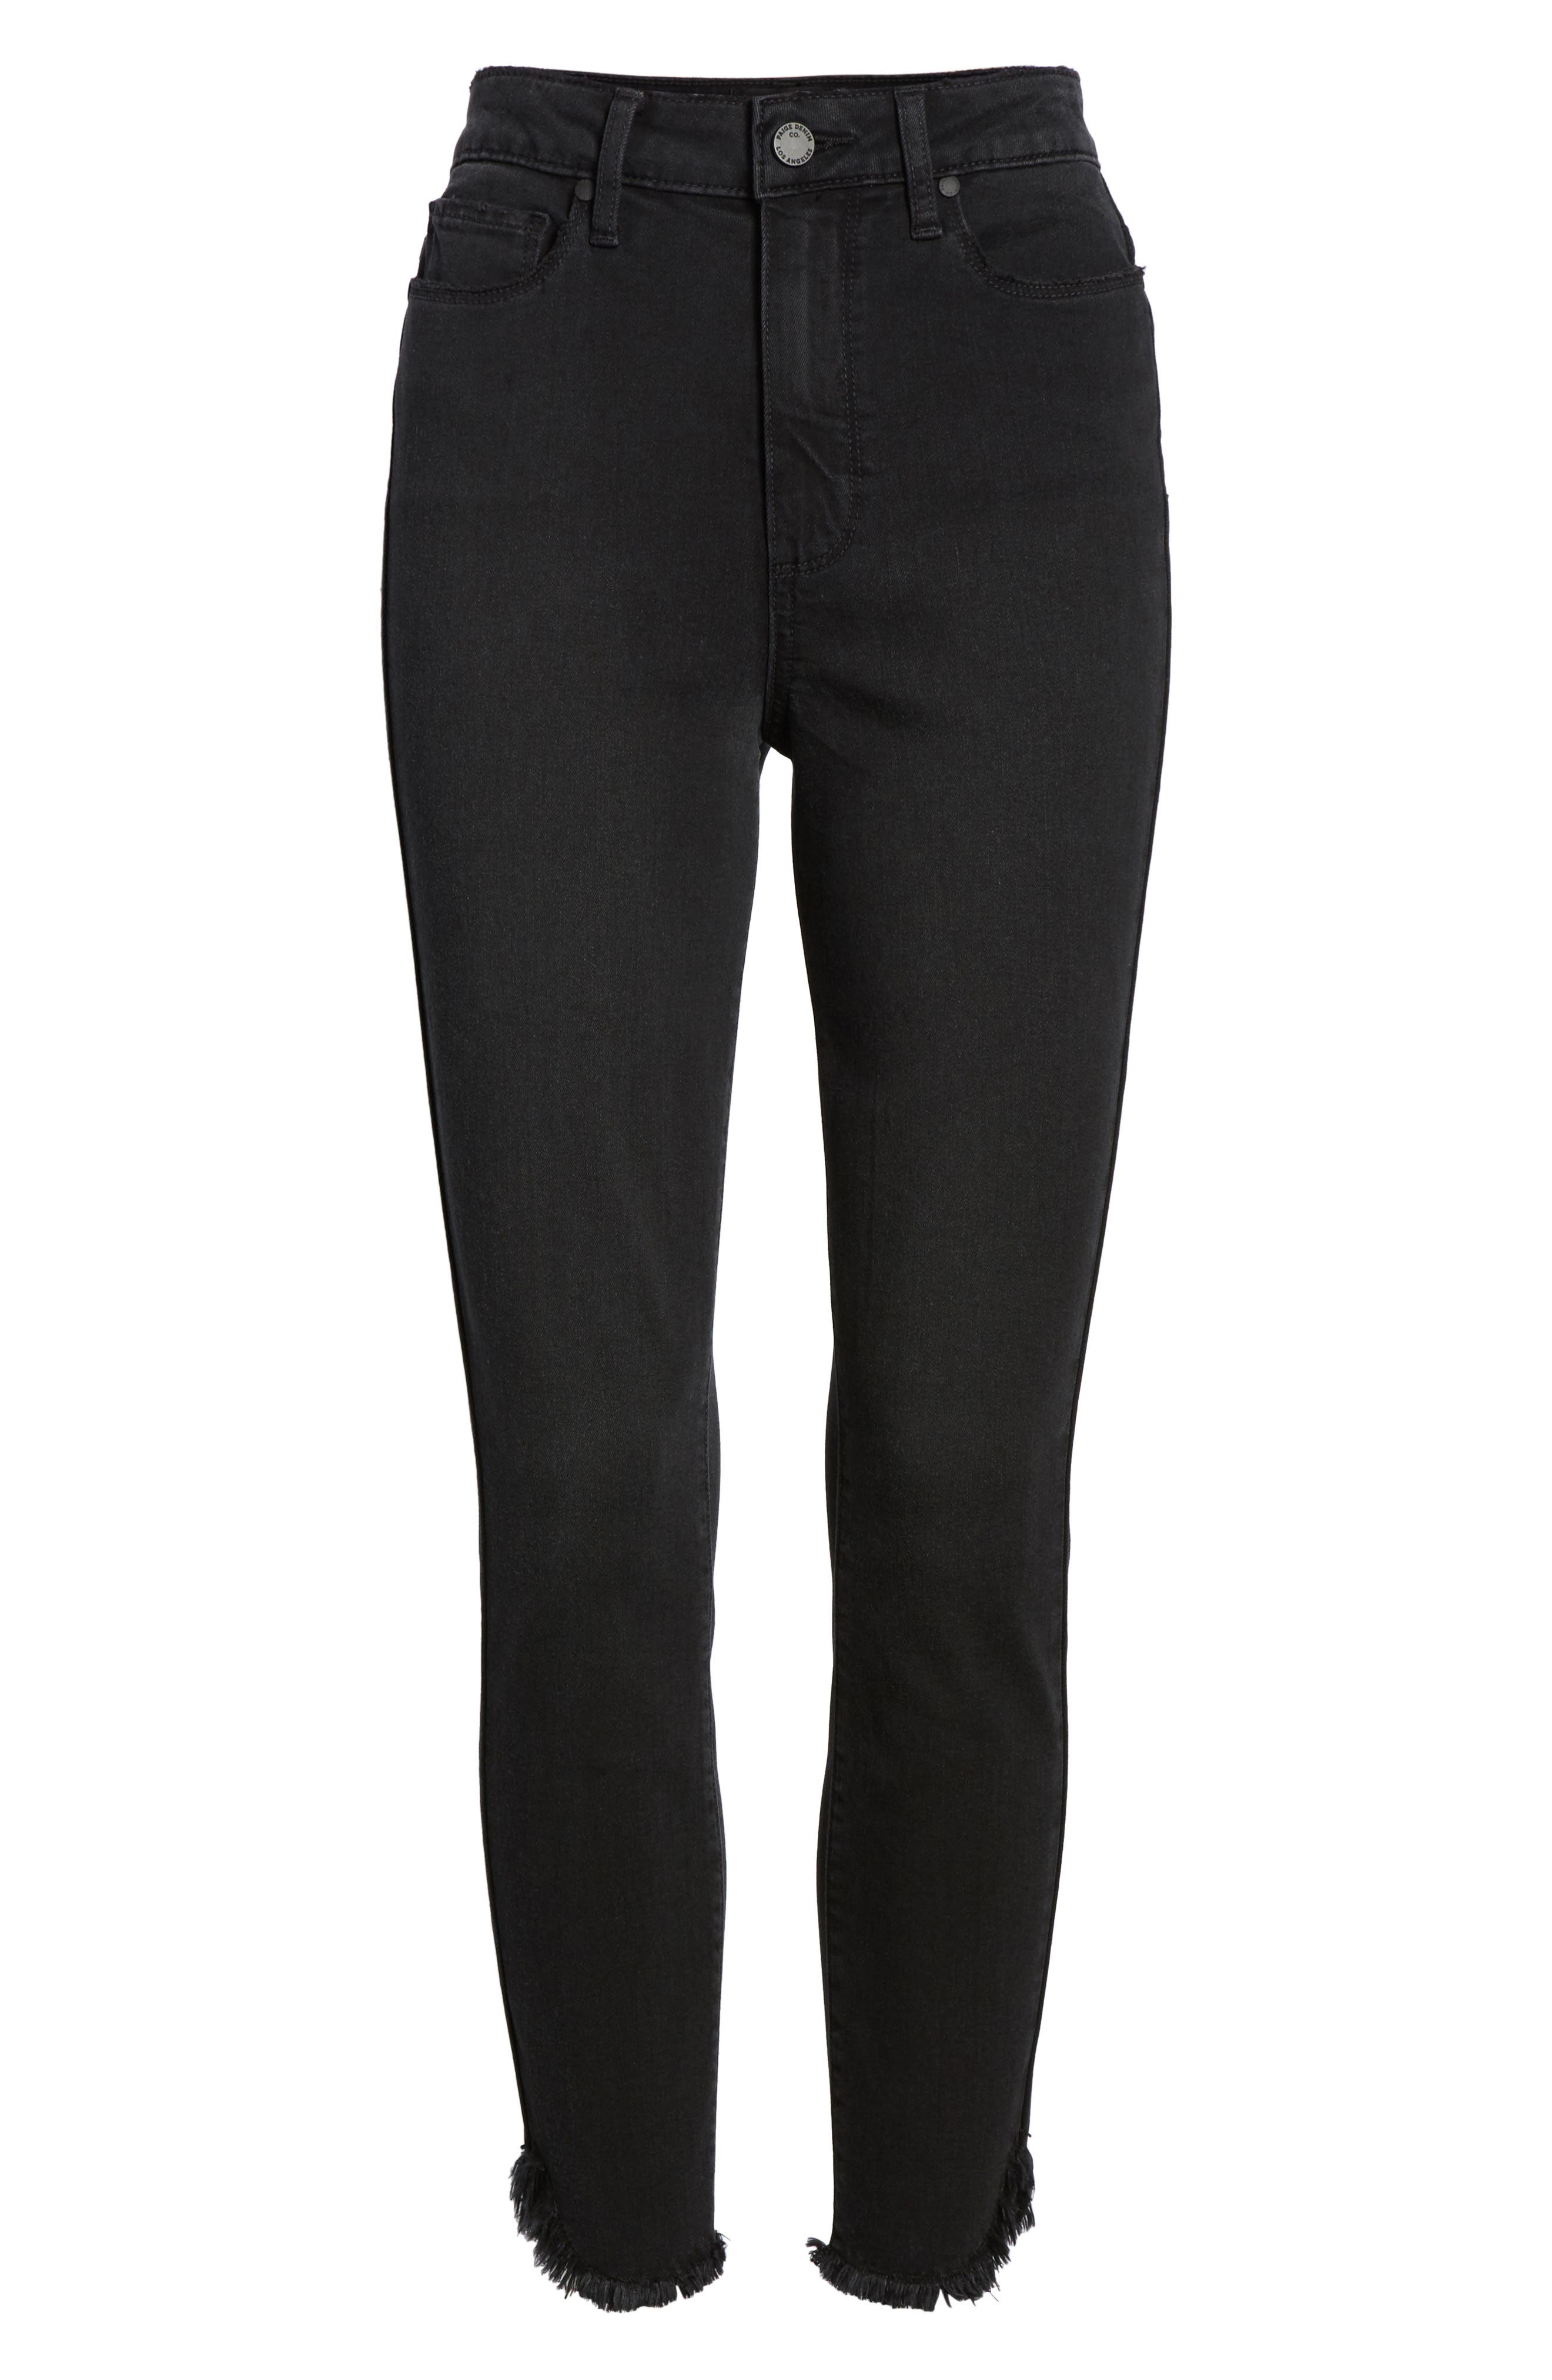 Transcend - Margot High Waist Crop Ultra Skinny Jeans,                             Alternate thumbnail 7, color,                             Draco